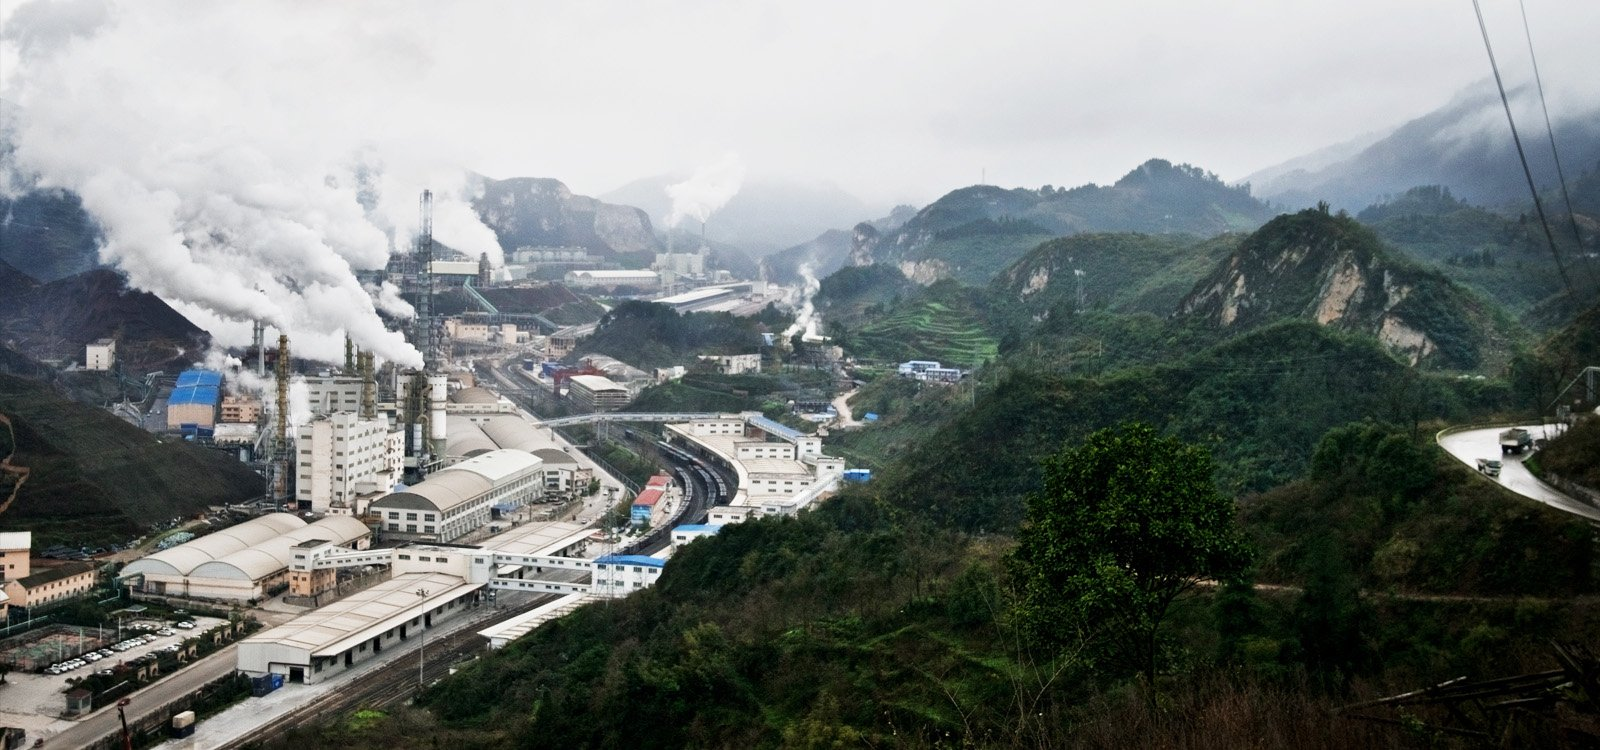 <p>Kailin, China, is blessed with rich natural resources which are expected to last for 100 years at the current rate of production.</p>